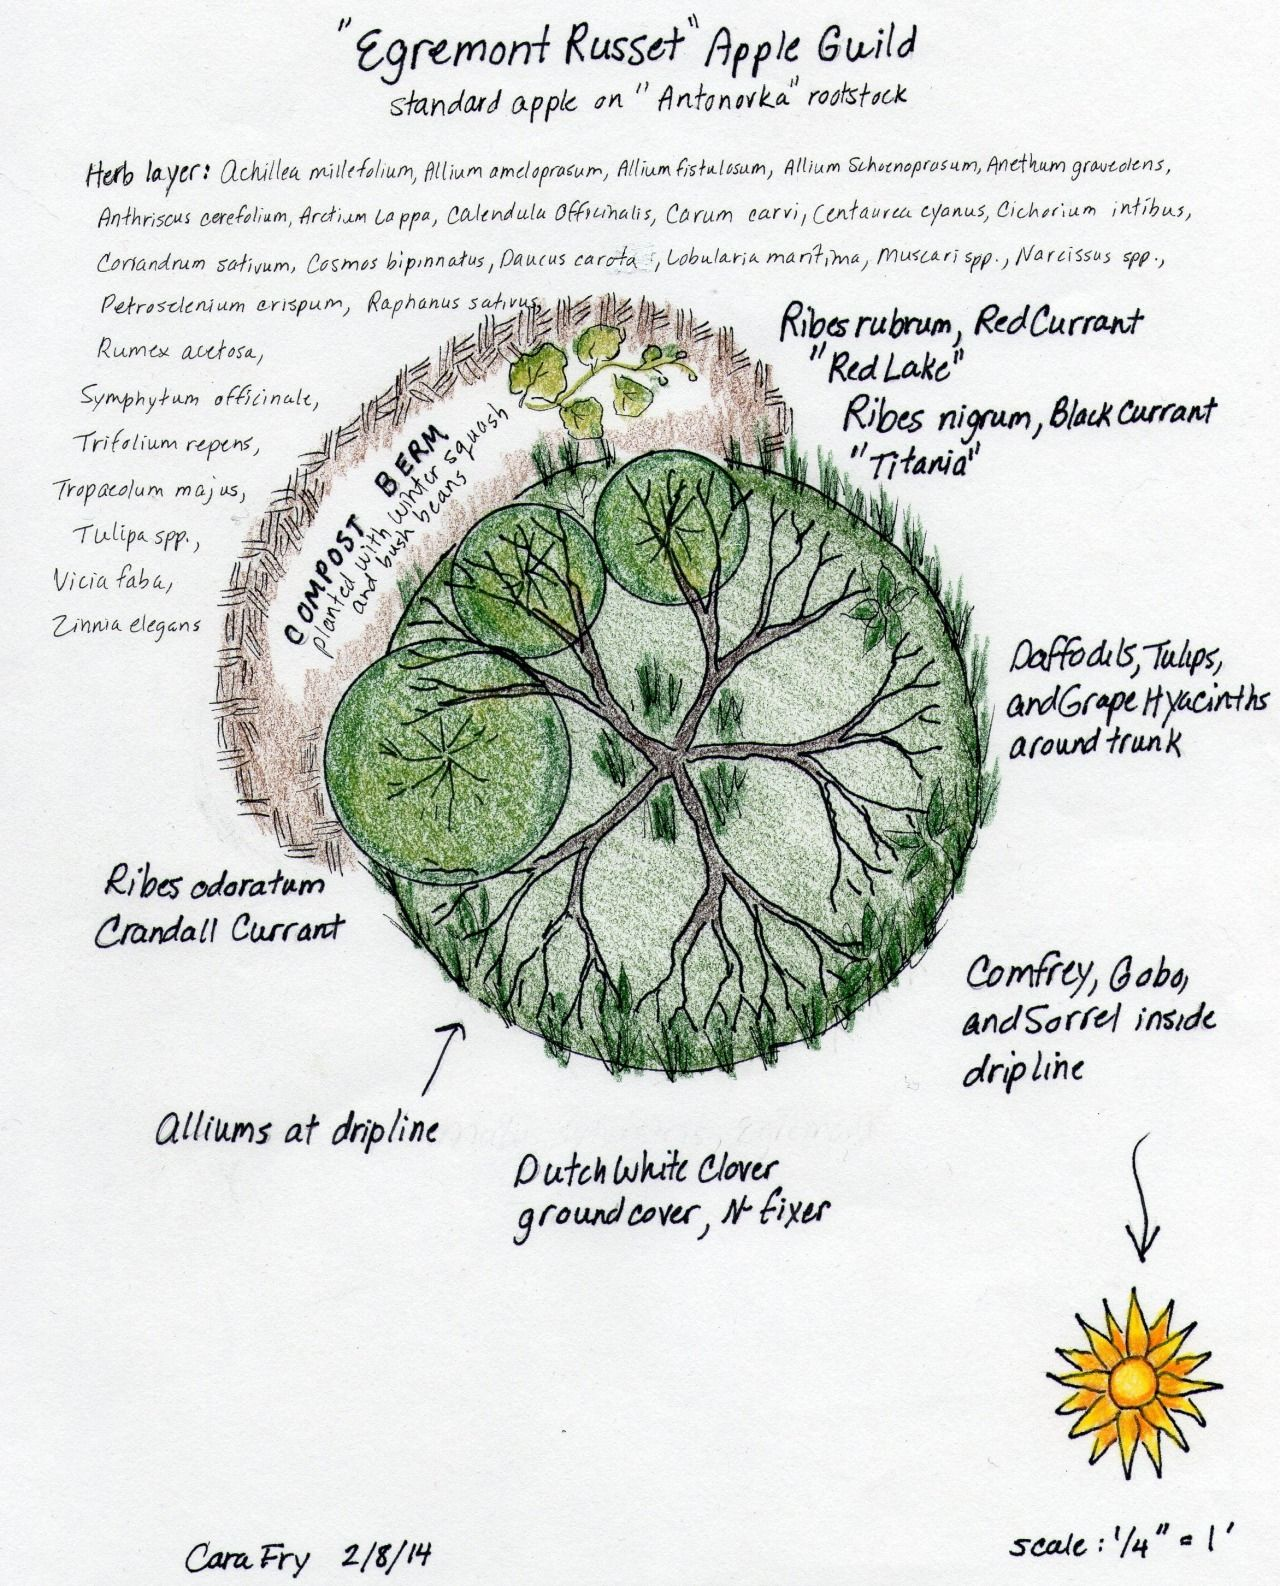 hight resolution of  egremont russet apple tree guild designed by c fry the egremont russet apple guild is the northernmost of the three we are planting this year